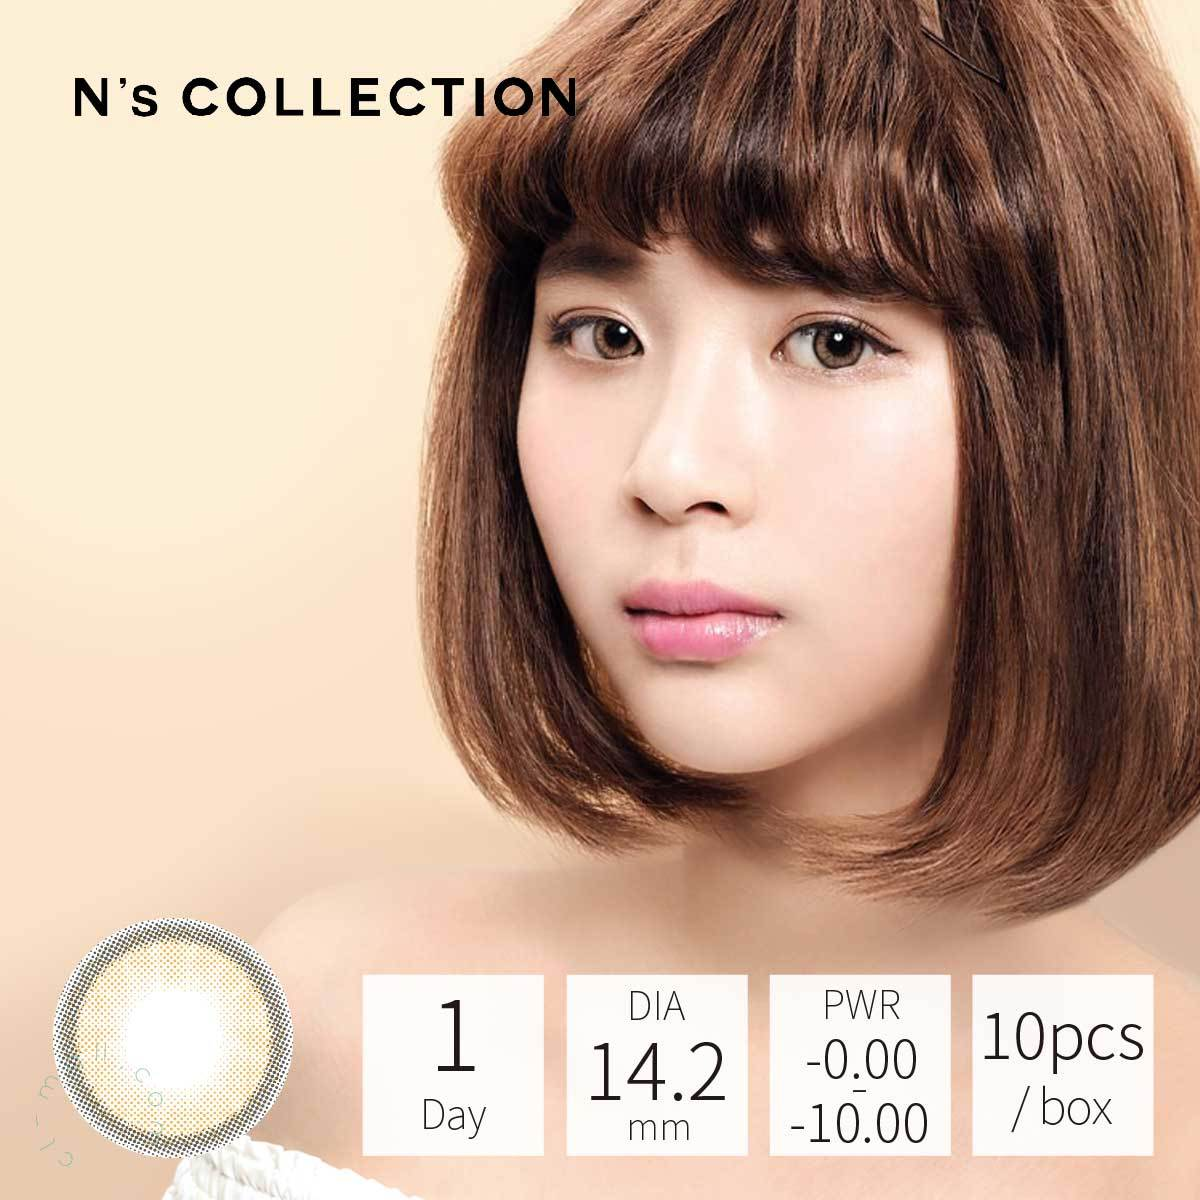 1•DAY PIA N's Collection Lemonade 10pcs,P:0.00